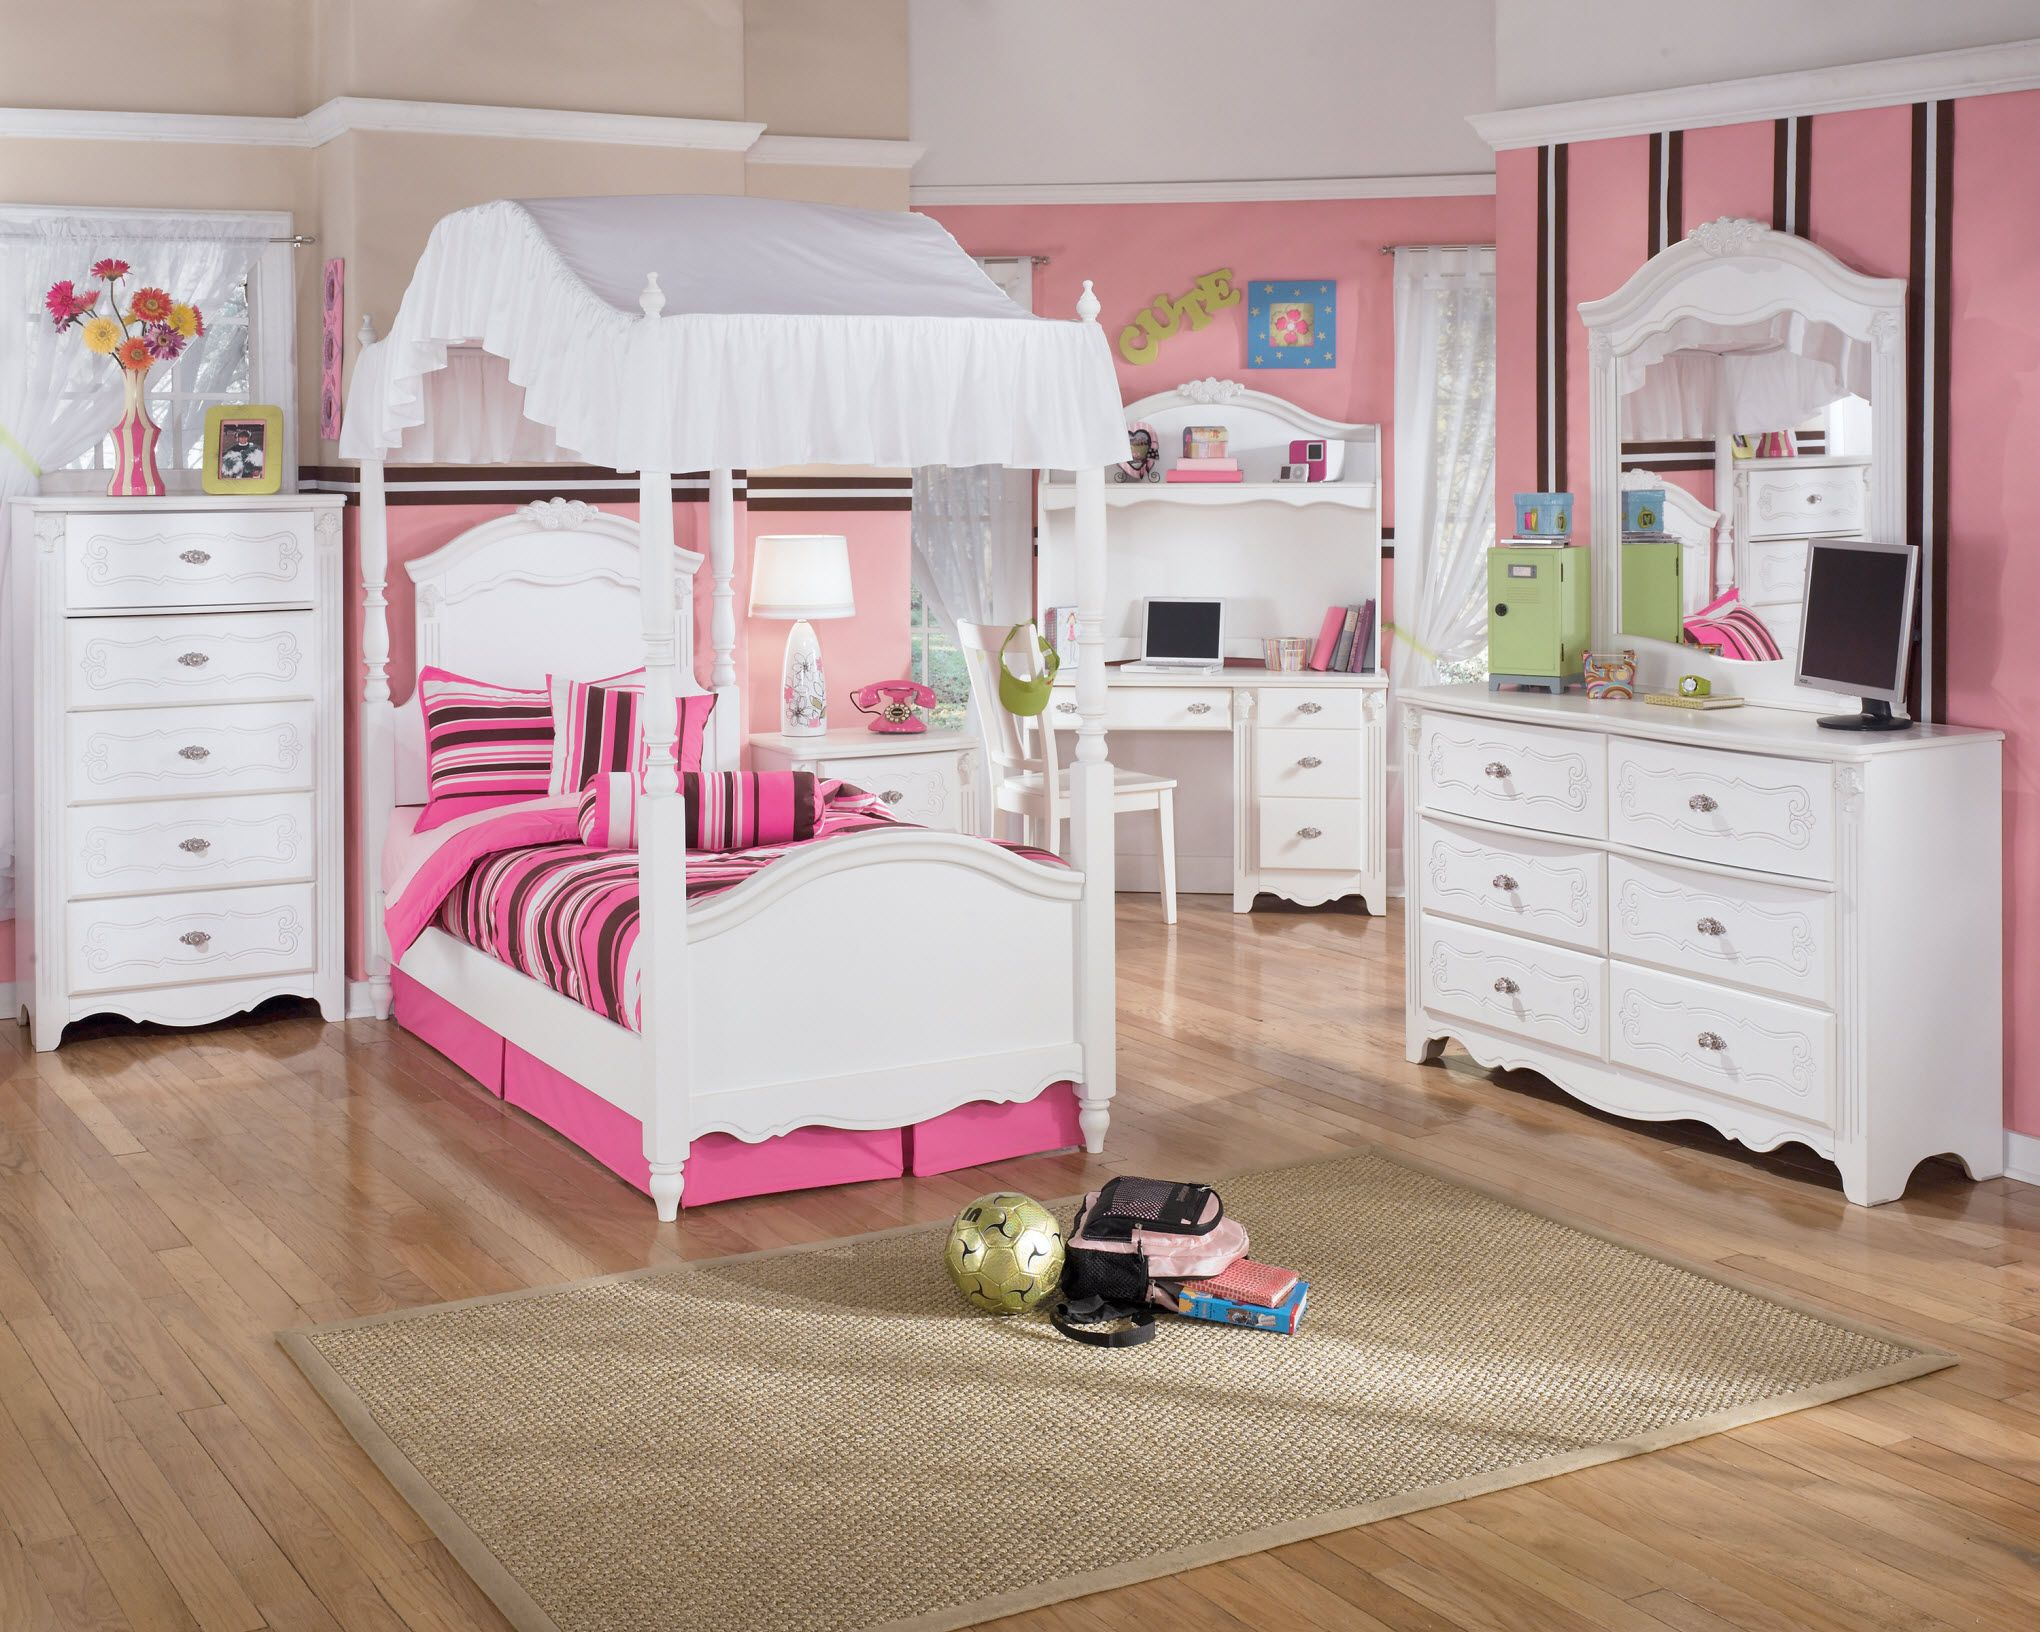 Kids Furniture Bedroom Kid Bedroom Stripe Pattern And White Bedroom Furniture Set Theme